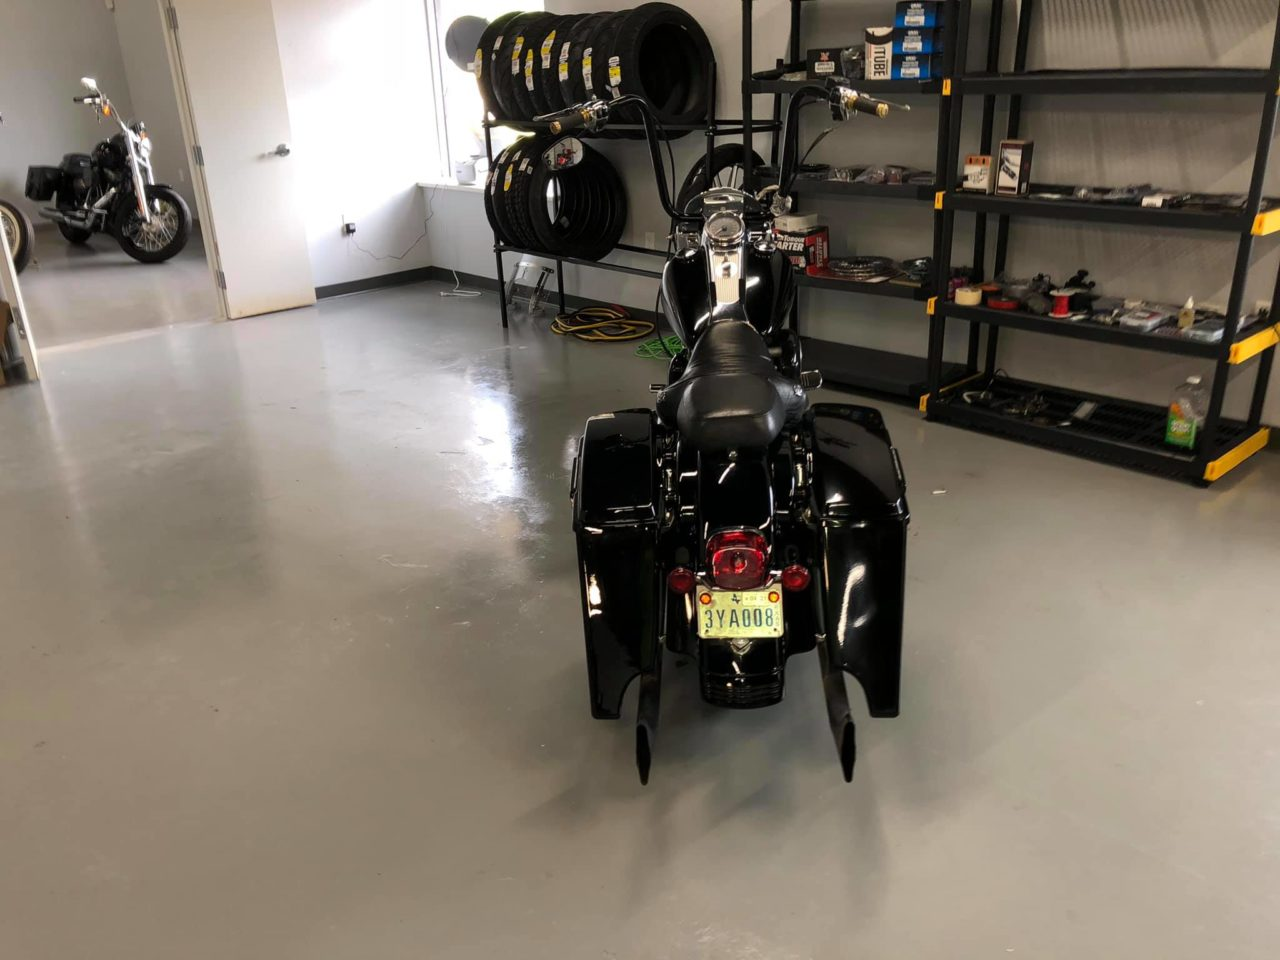 Styling & Profiling Truck Accessories, Motorcycle and Trailer Repair